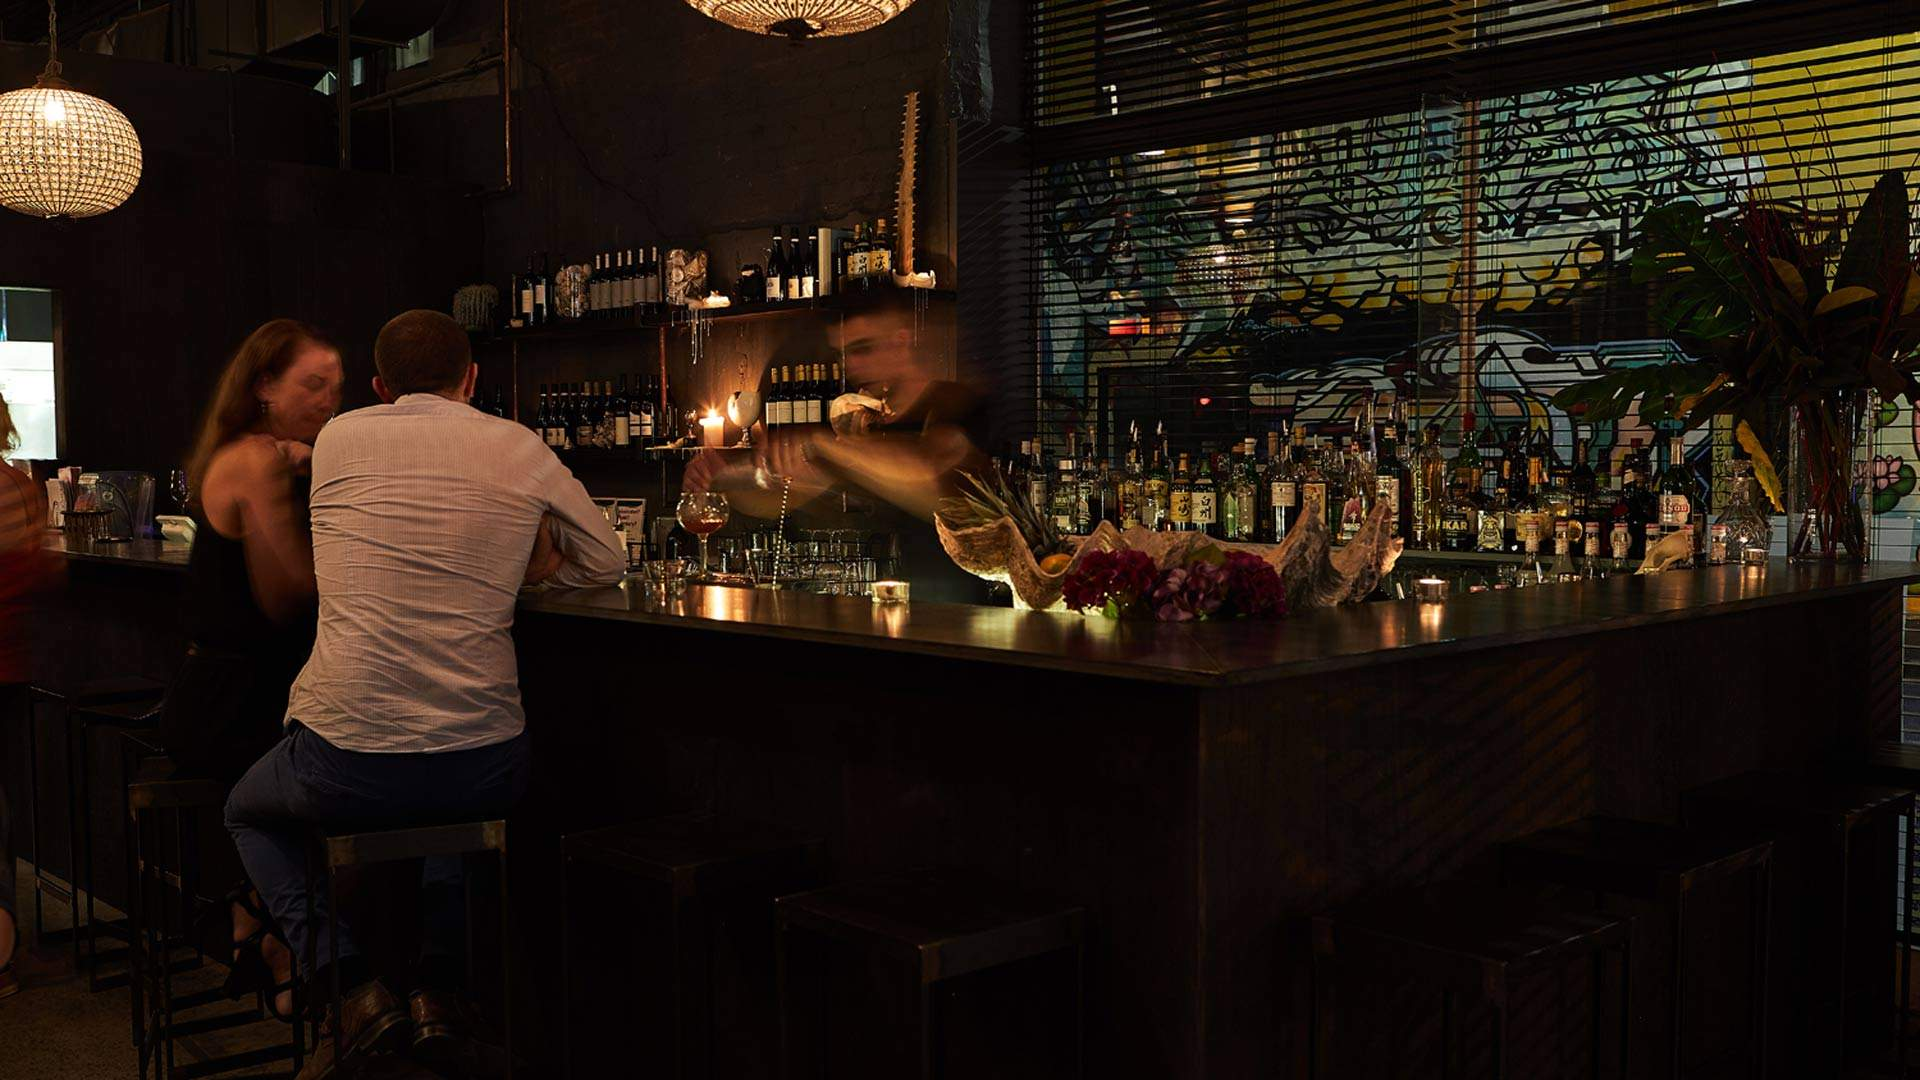 Melbourne Bars and Restaurants That Are Undeniably, Unabashedly Romantic